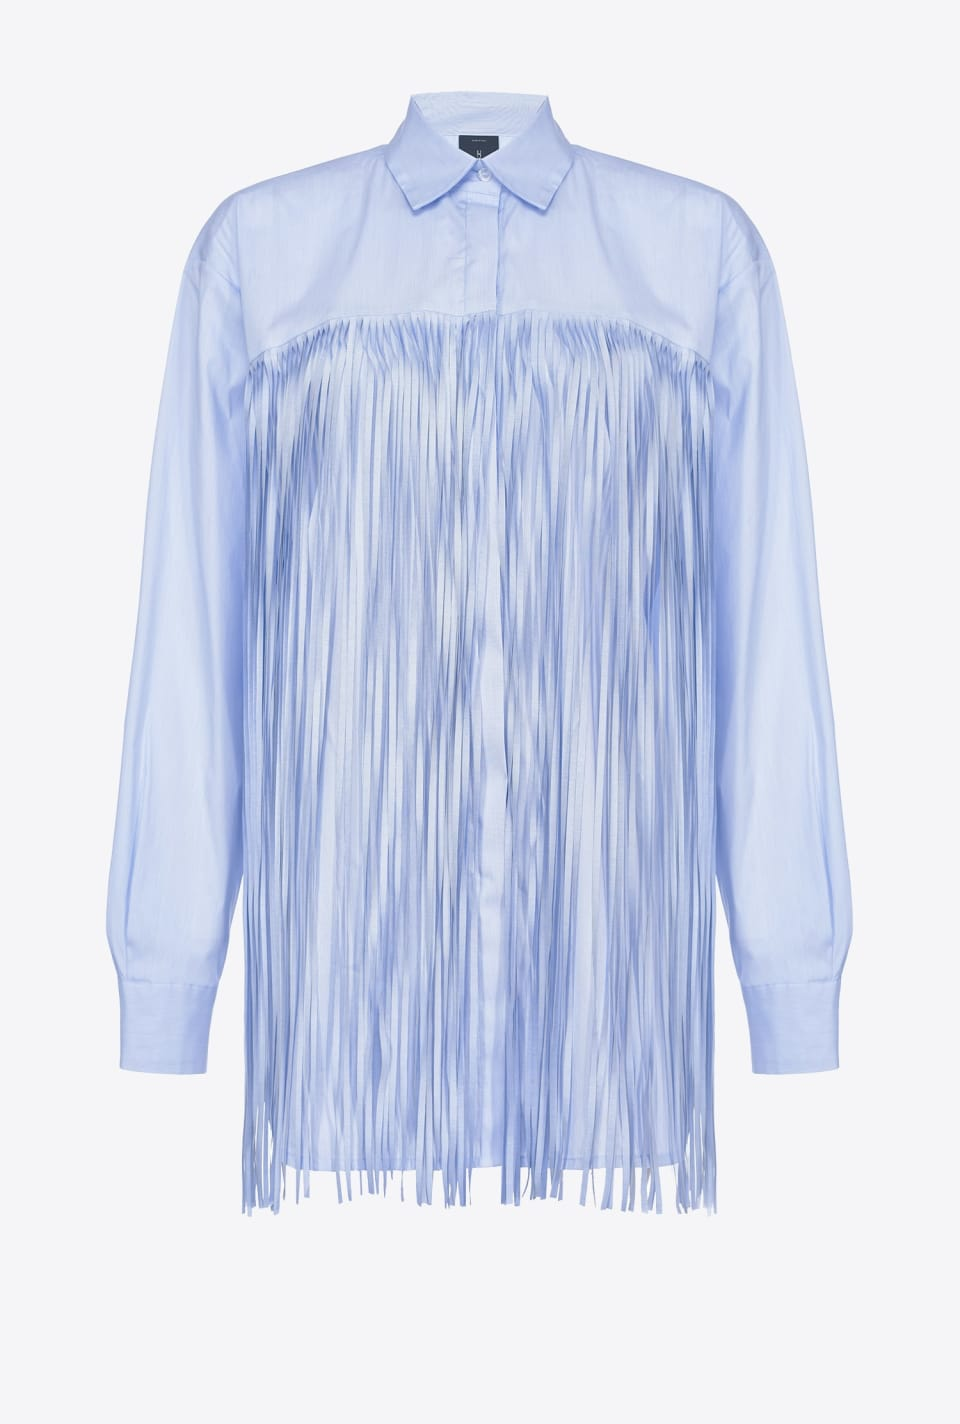 Oversized shirt with maxi fringes - Pinko